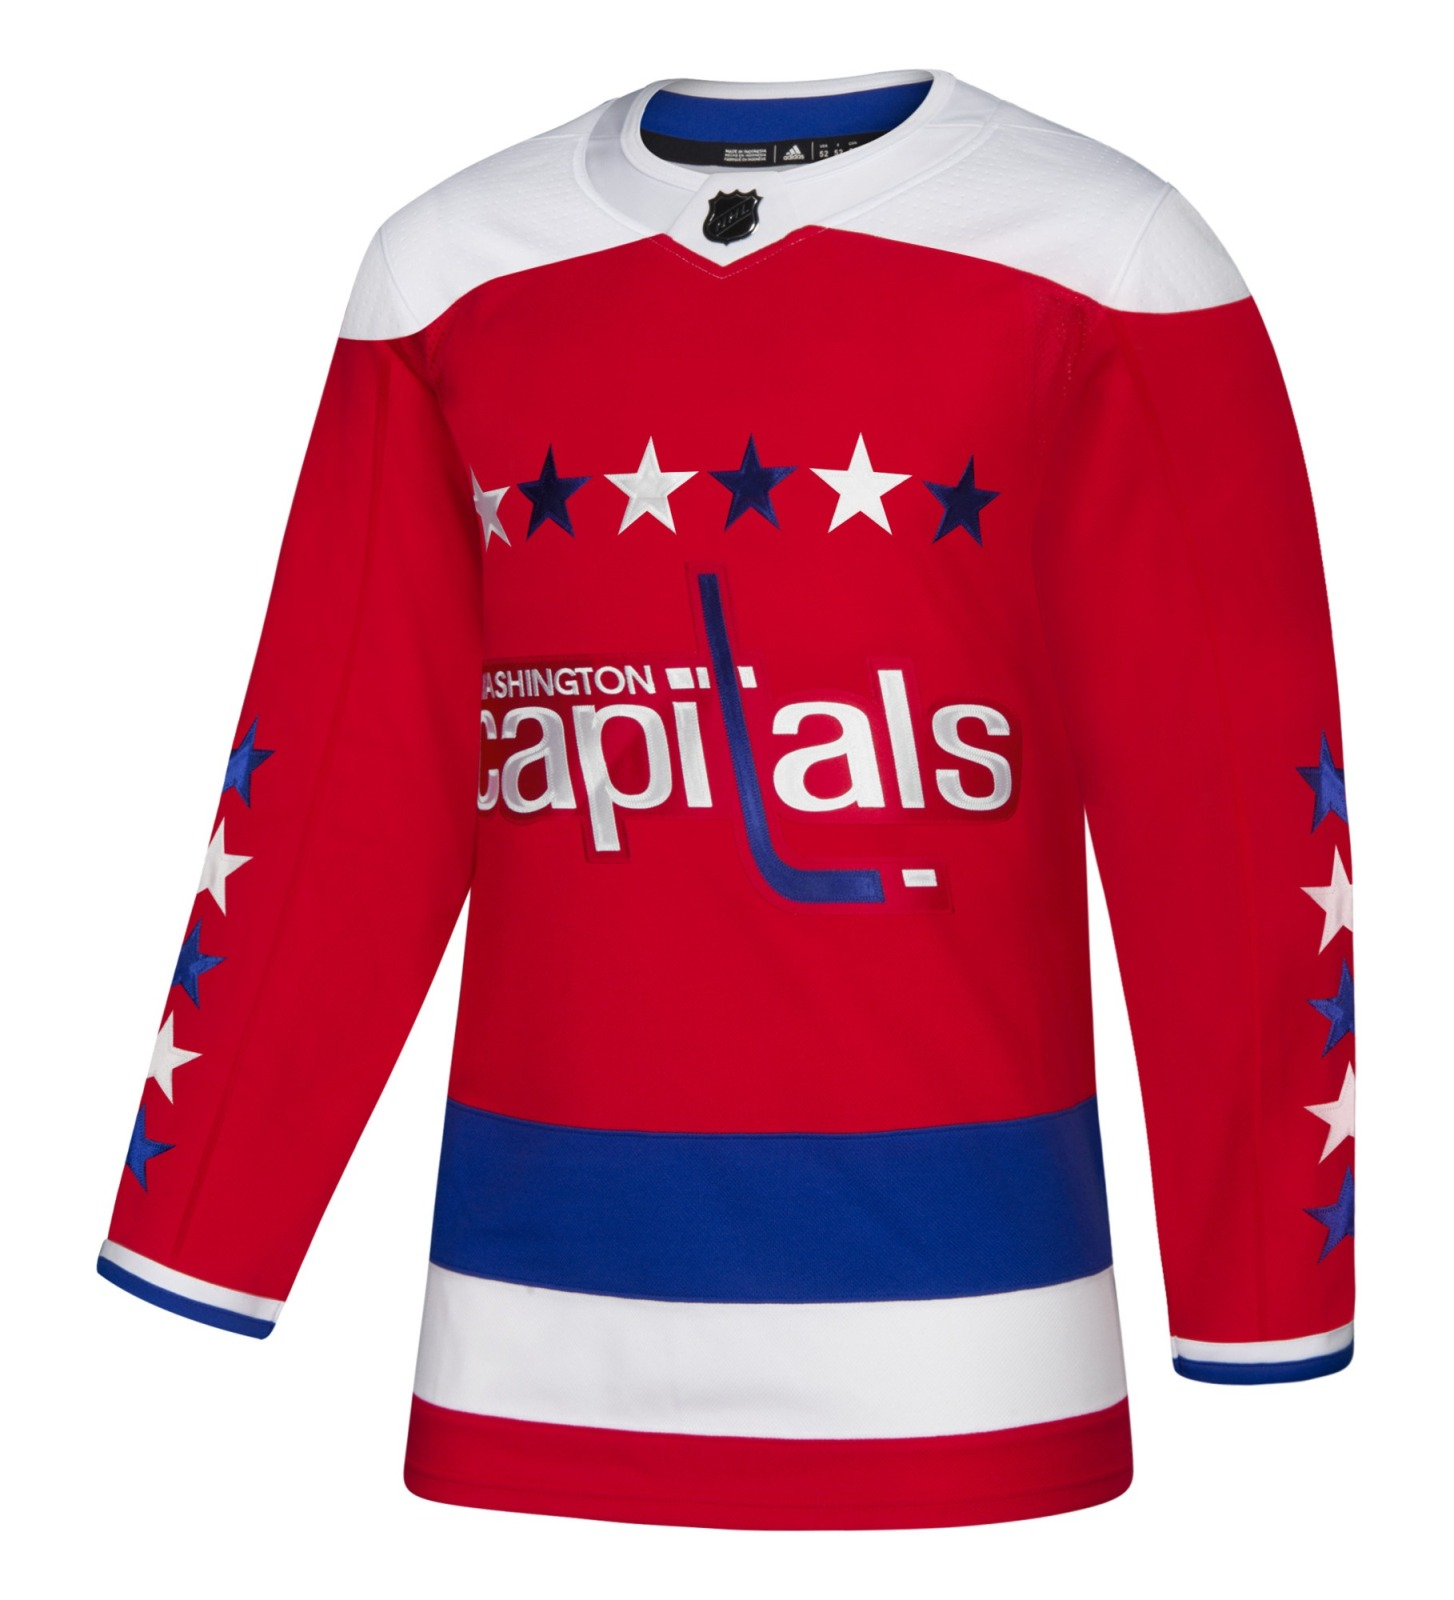 Washington Capitals Adidas NHL Men's Climalite Authentic Alternate Hockey Jersey